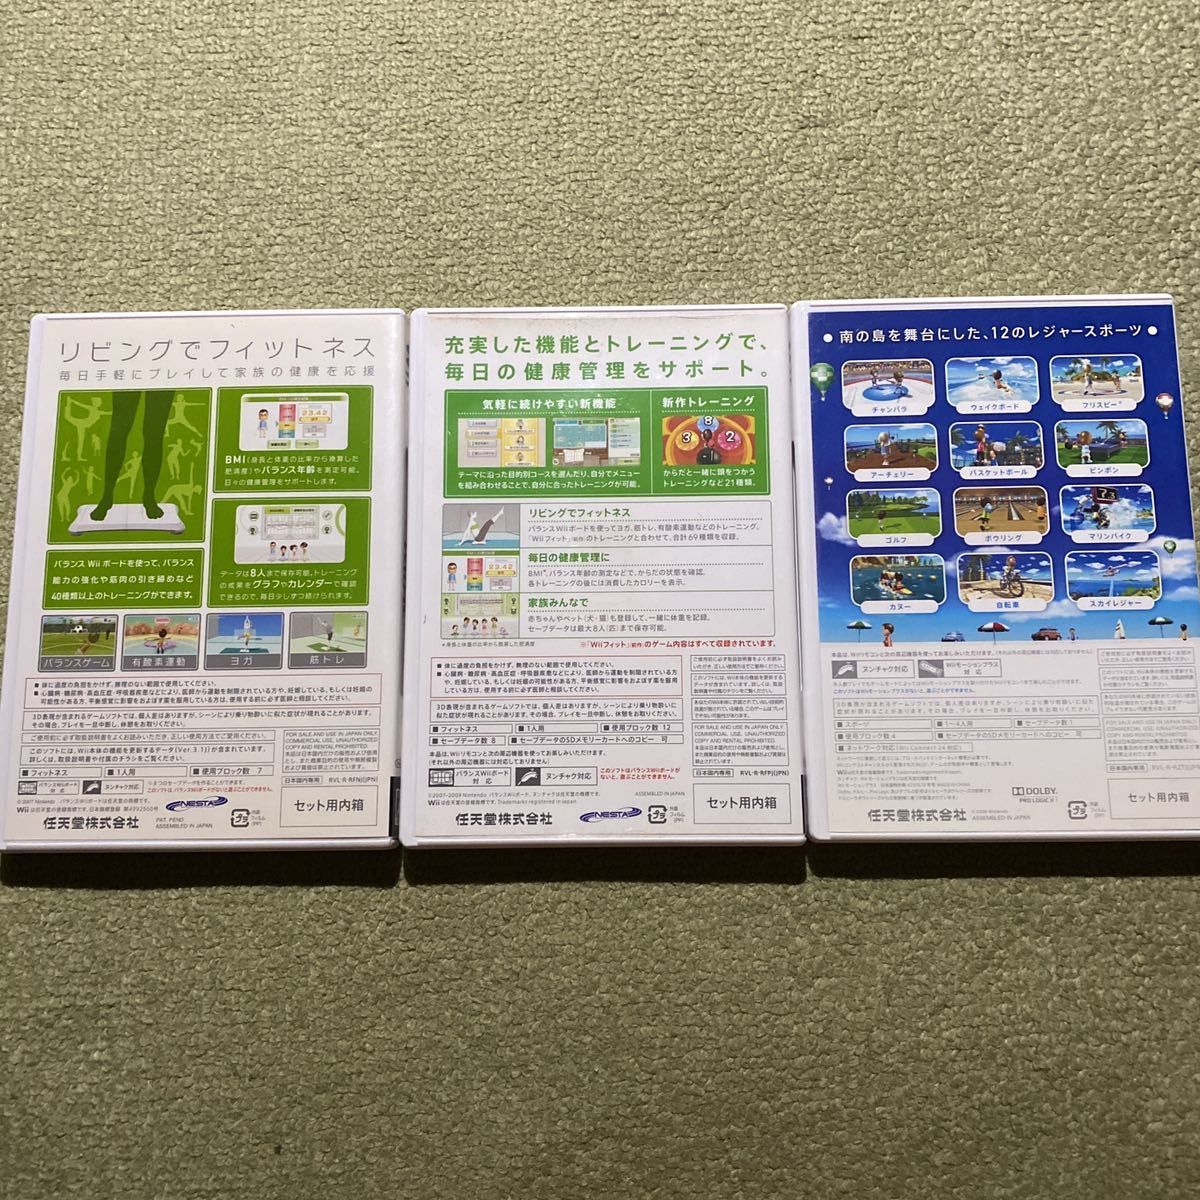 Wii Wii Fit Wii Fit Plus Wii Sportsリゾート 送料無料